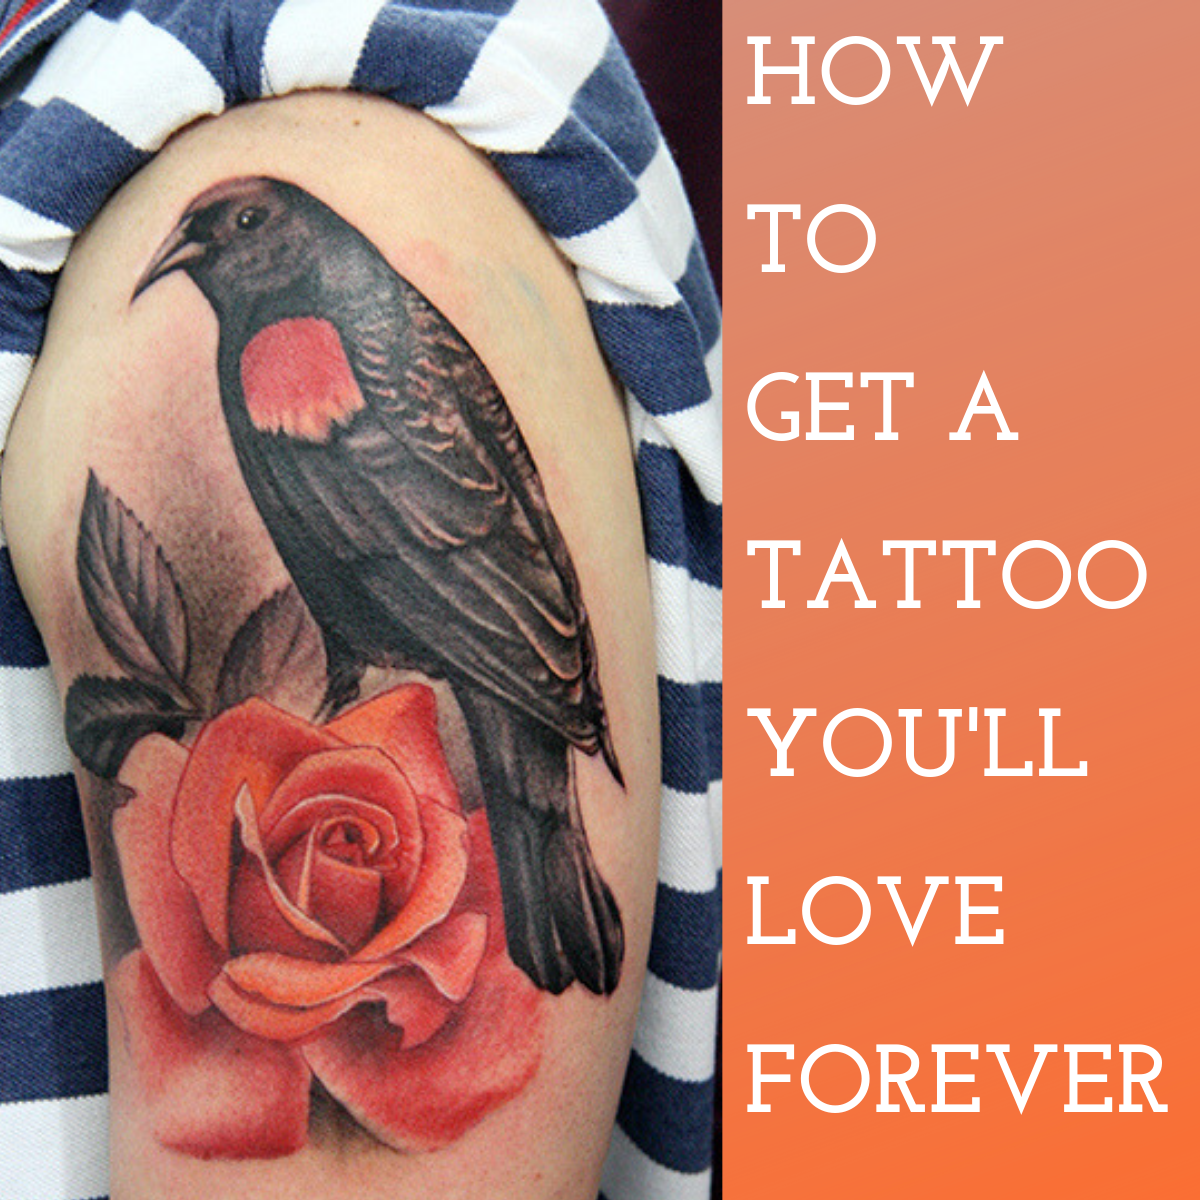 475a8ded0bc64 A Tattoo Artist's Tips for Getting a Tattoo You'll Love Forever ...